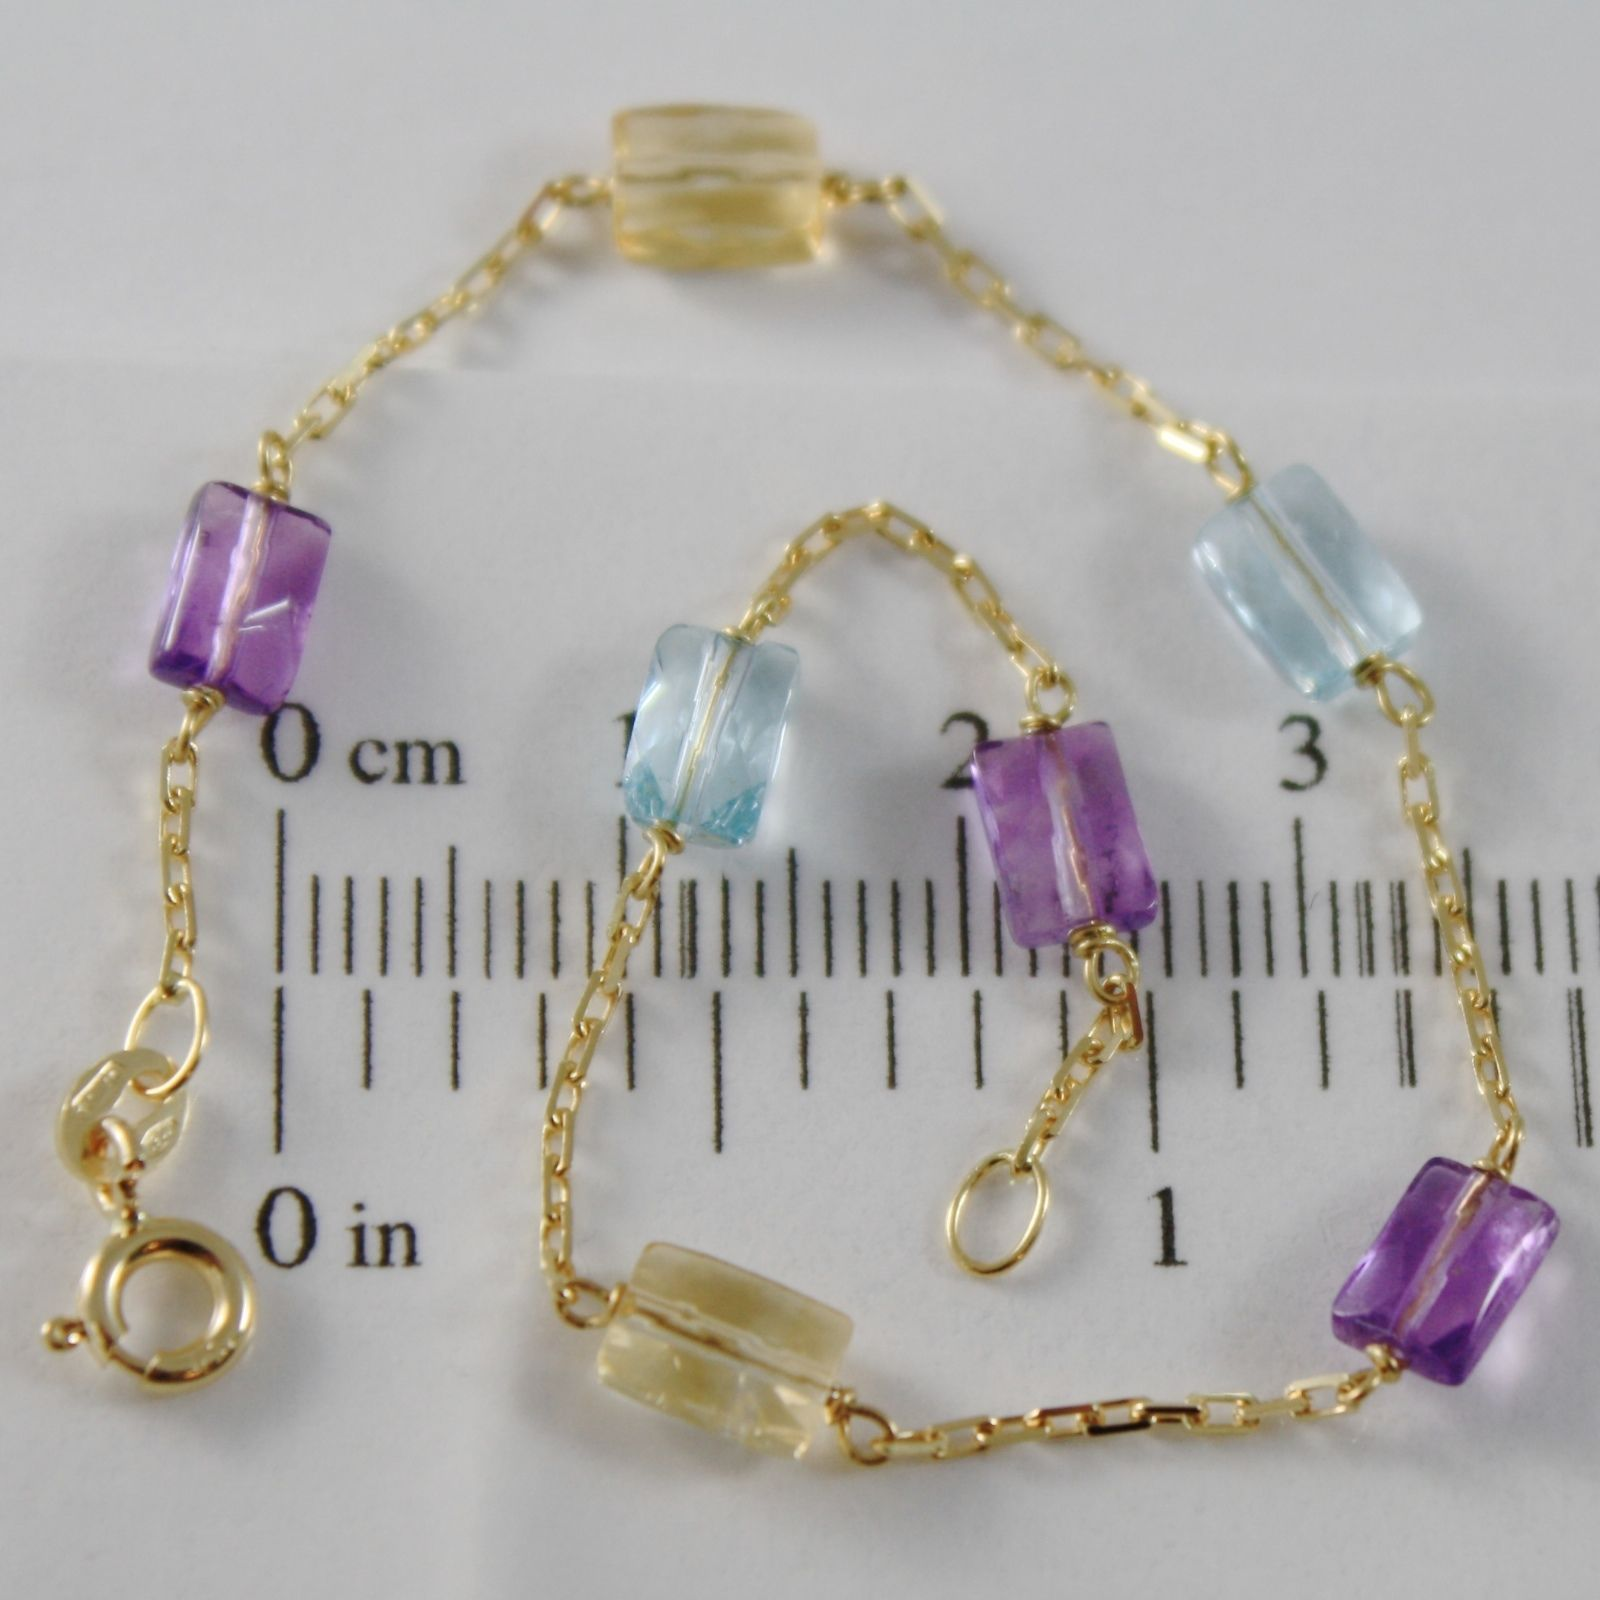 18K YELLOW GOLD BRACELET SQUARED CHAIN AMETHYST CITRINE BLUE TOPAZ MADE IN ITALY